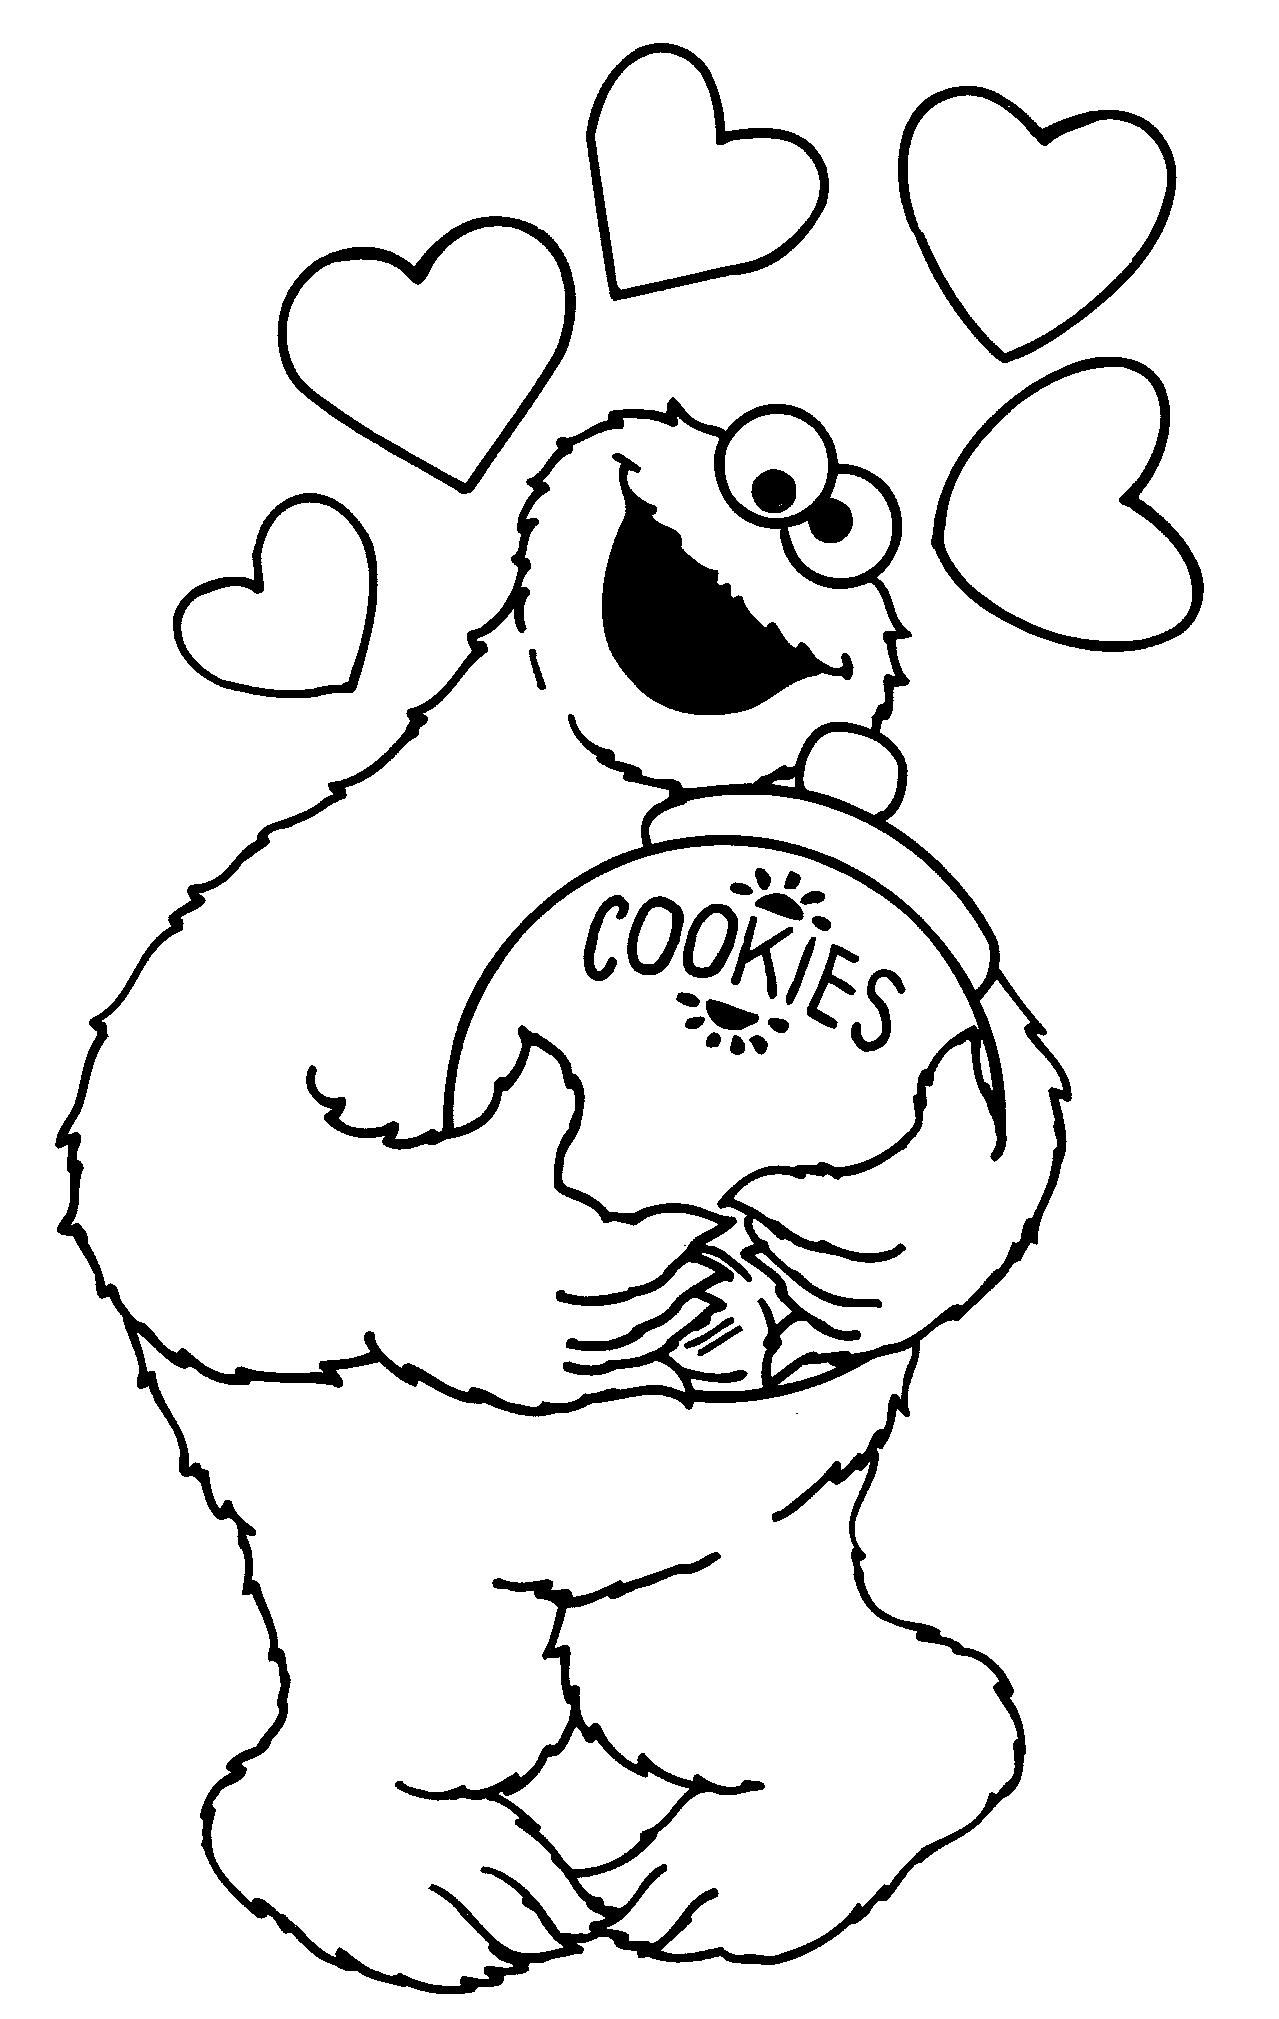 Cookie Monster Cookie Jar Coloring